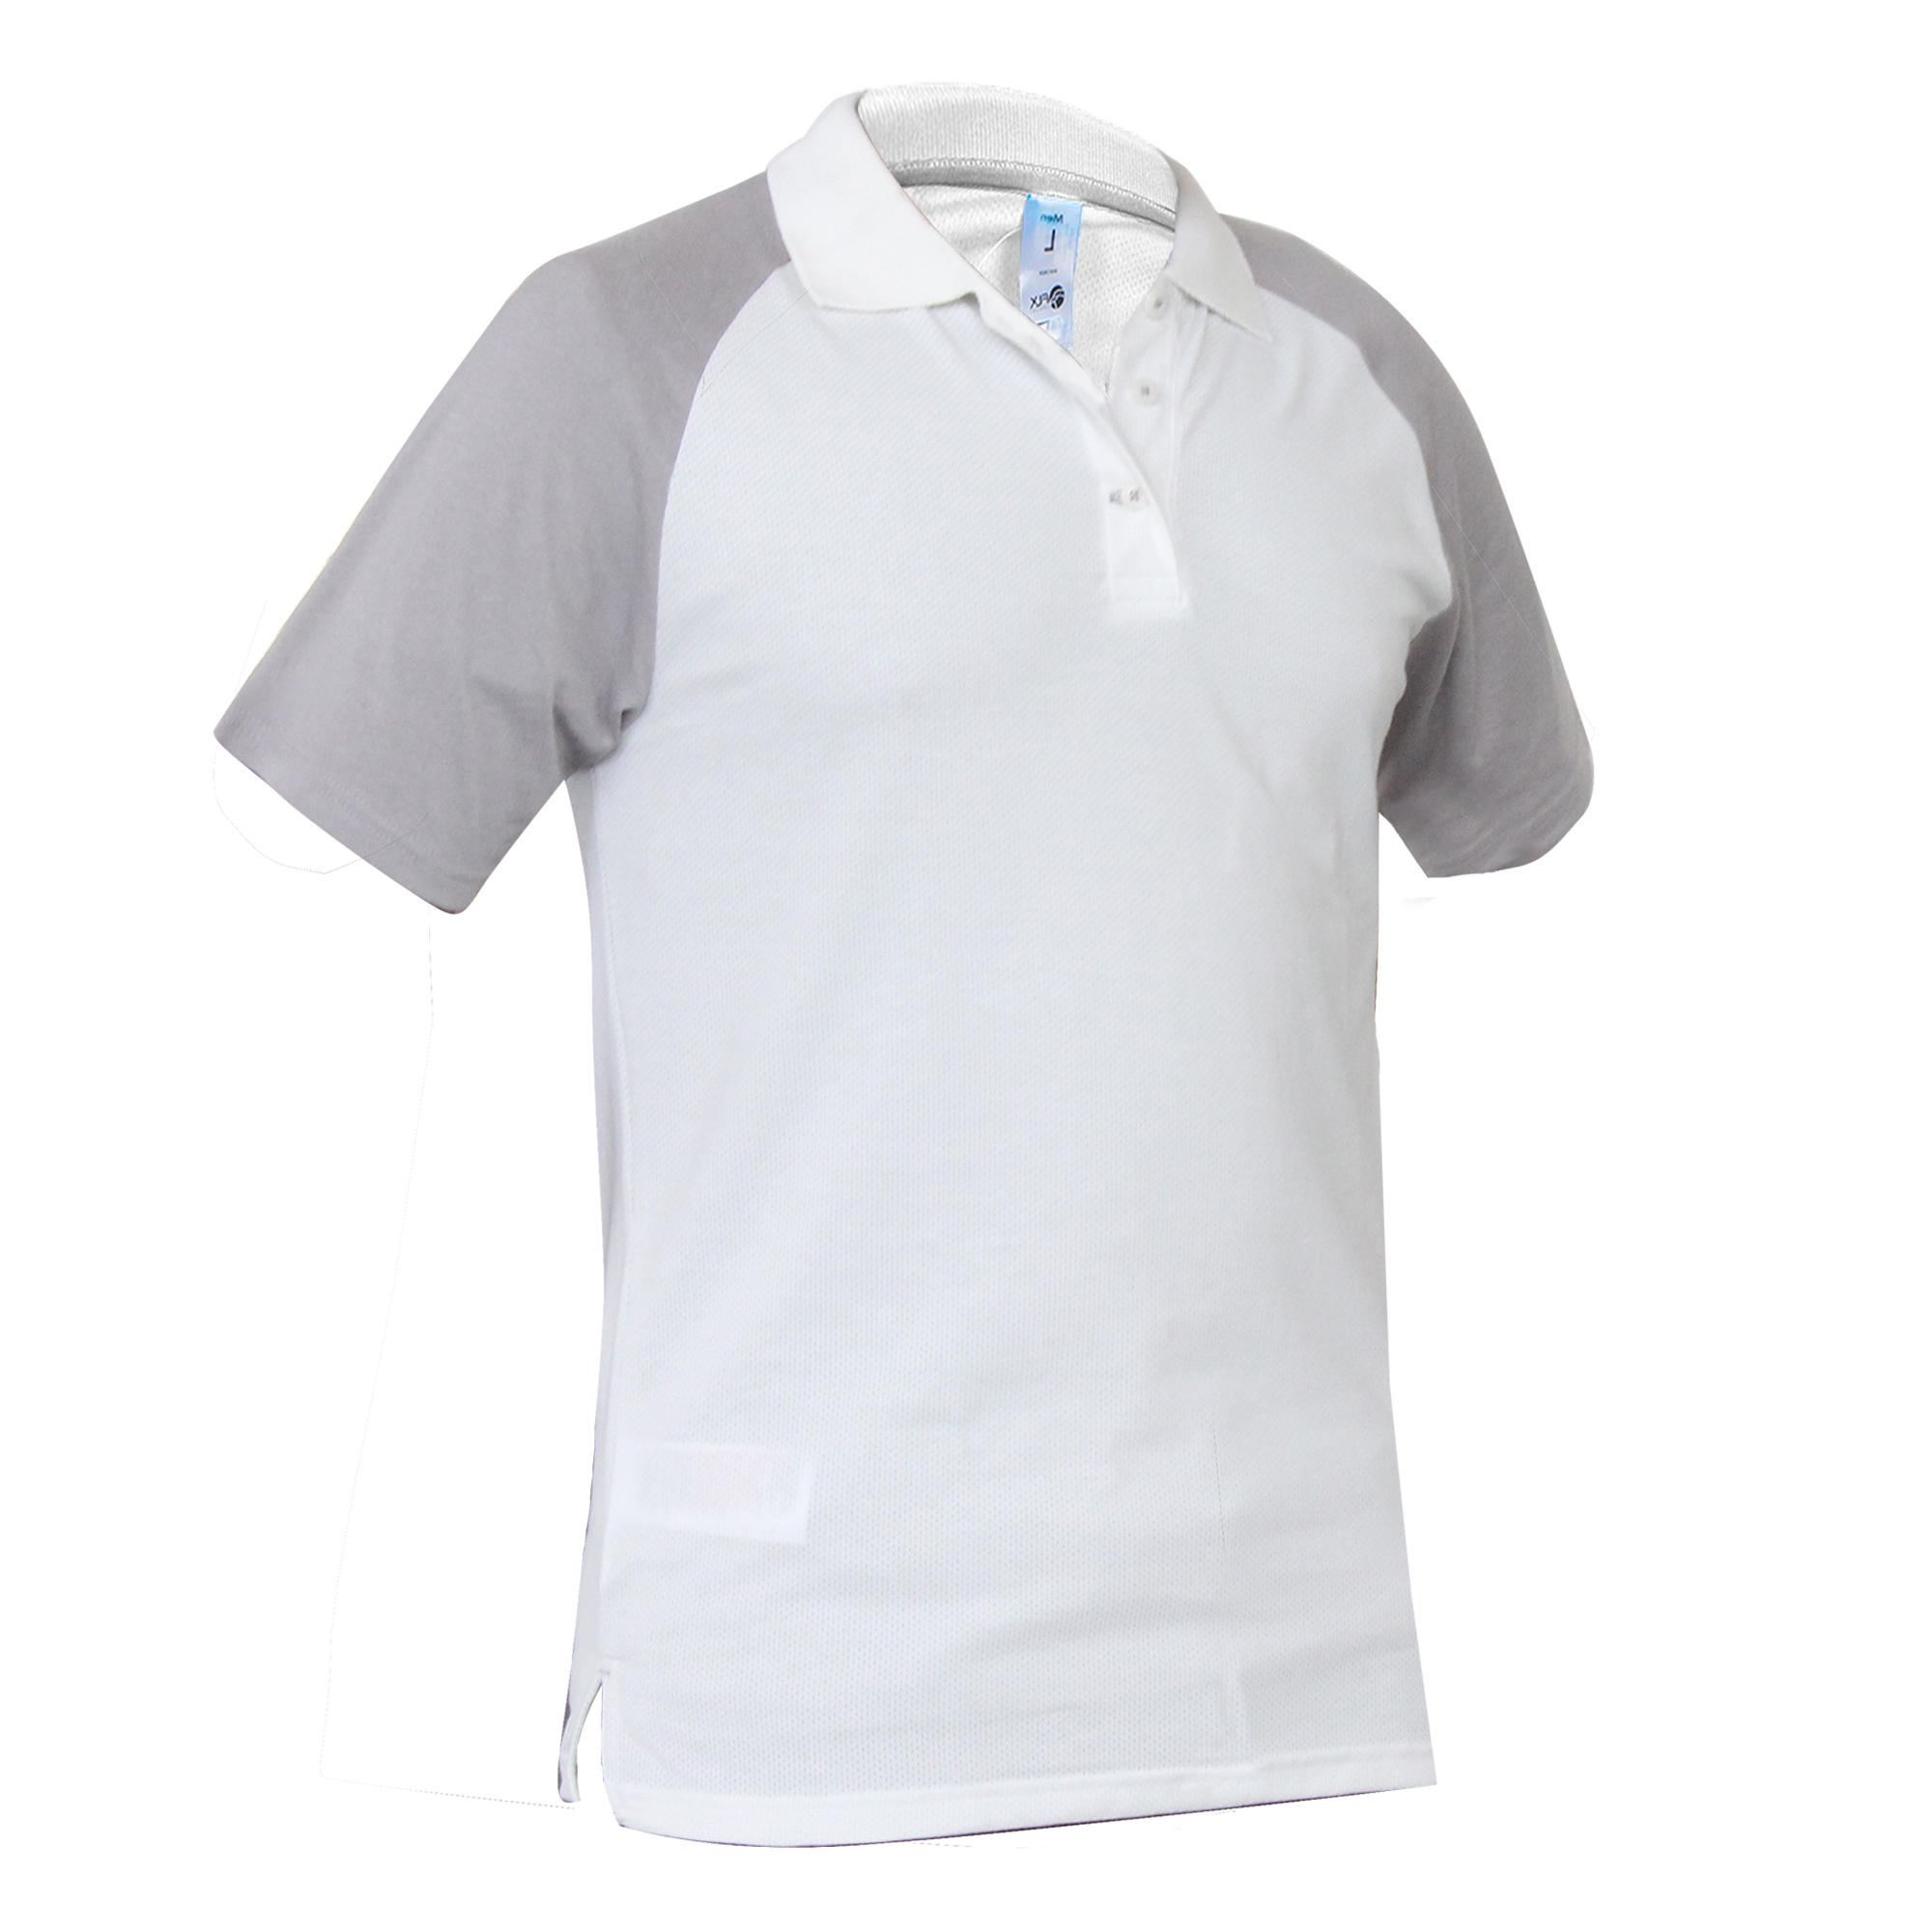 Cricket Polo T-shirt CT520 - White/Grey